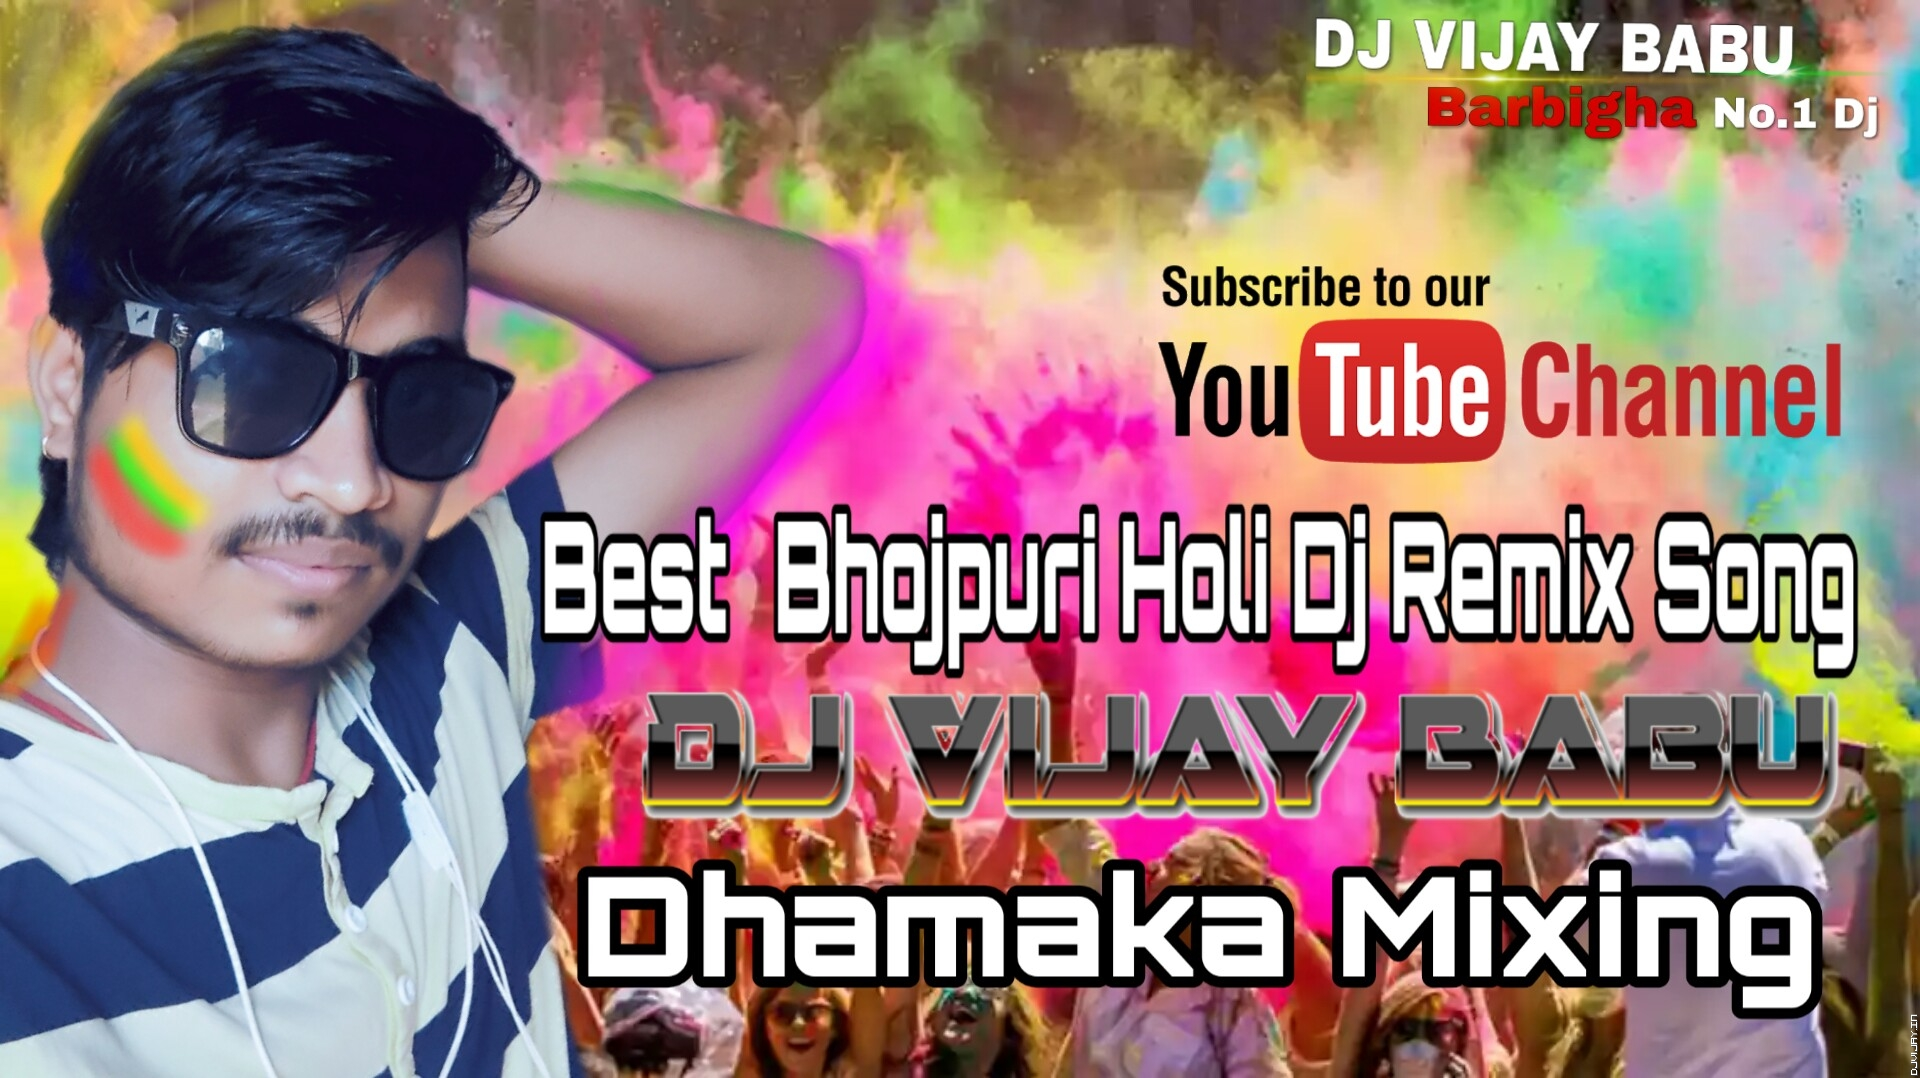 Daaru_Pike_Giral_Ba_Sajnwa_A_Sakhi_Fully_Dance_Mix_Dj_Vijay Barbigha.mp3